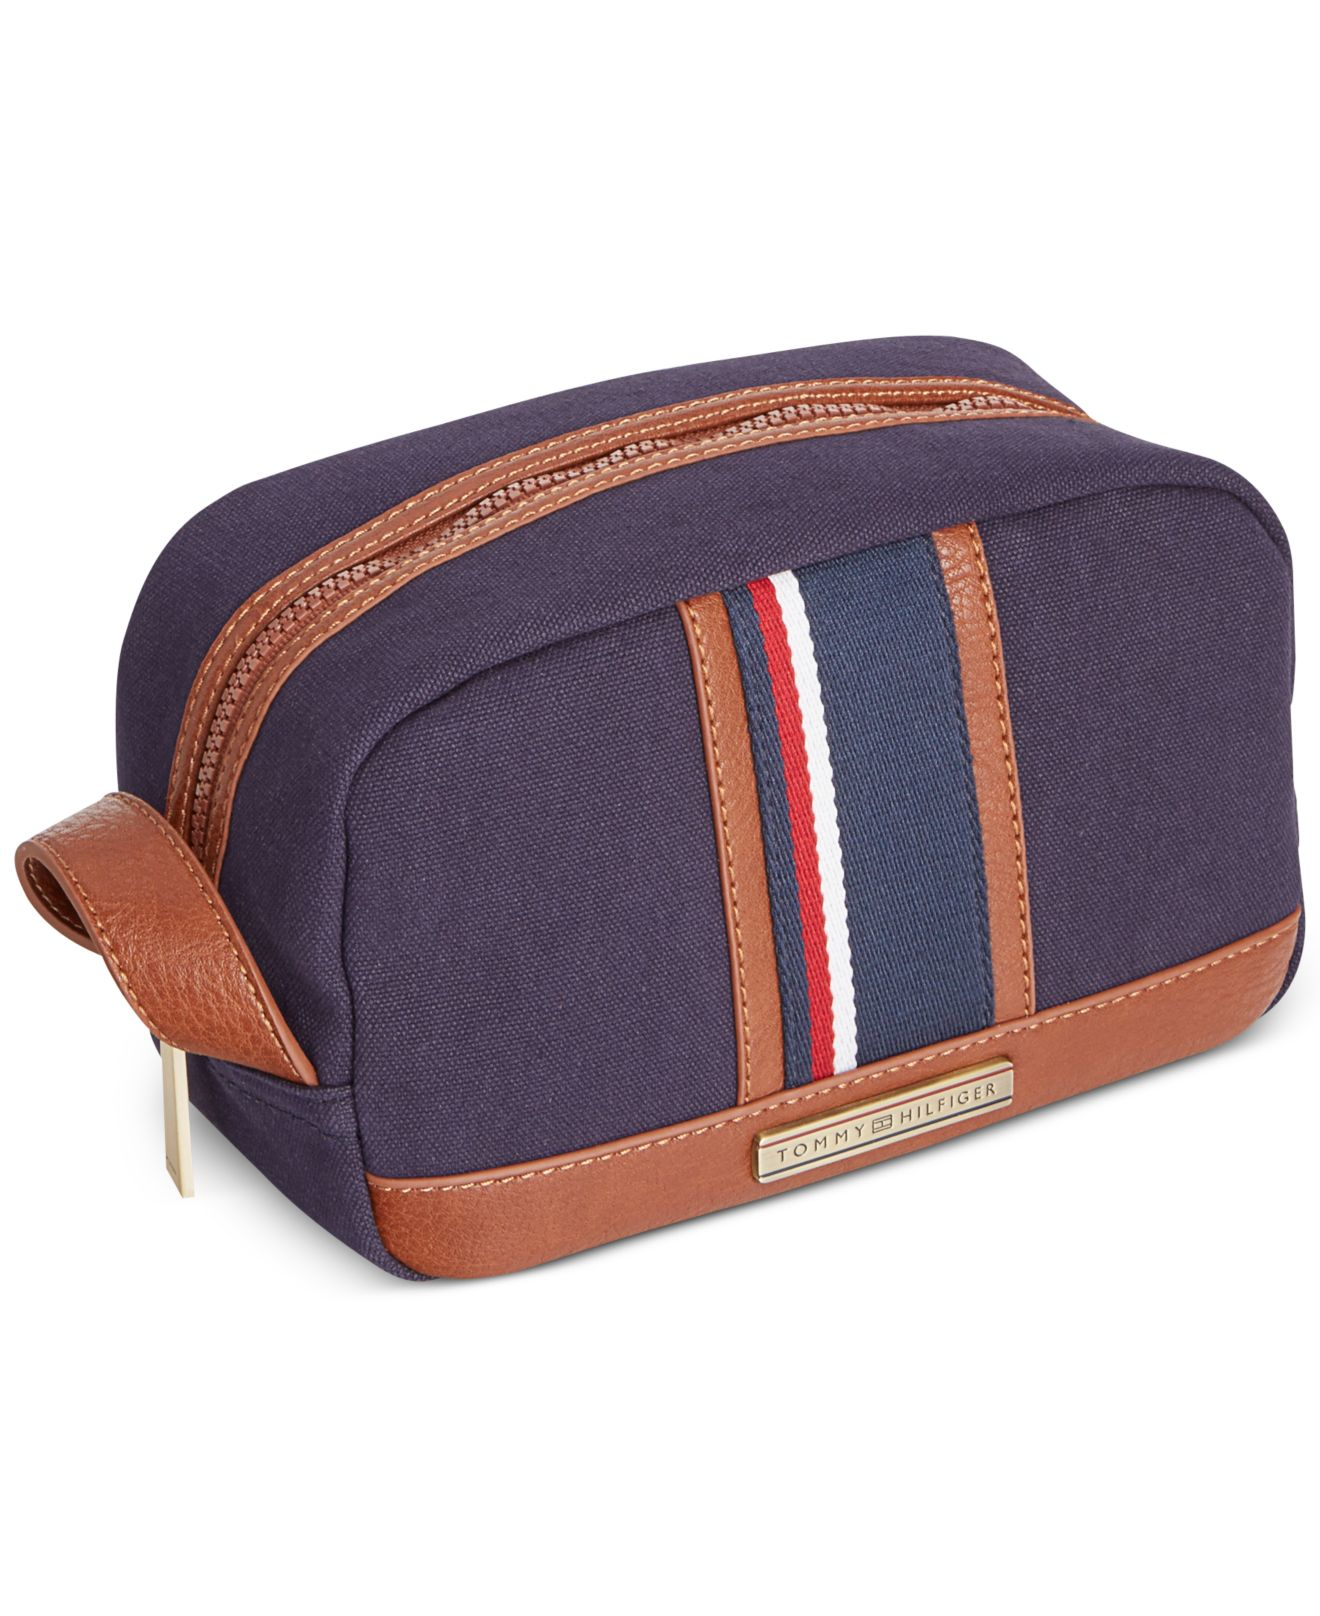 4d14f96f24d Lyst - Tommy Hilfiger Connor Dopp Kit in Blue for Men